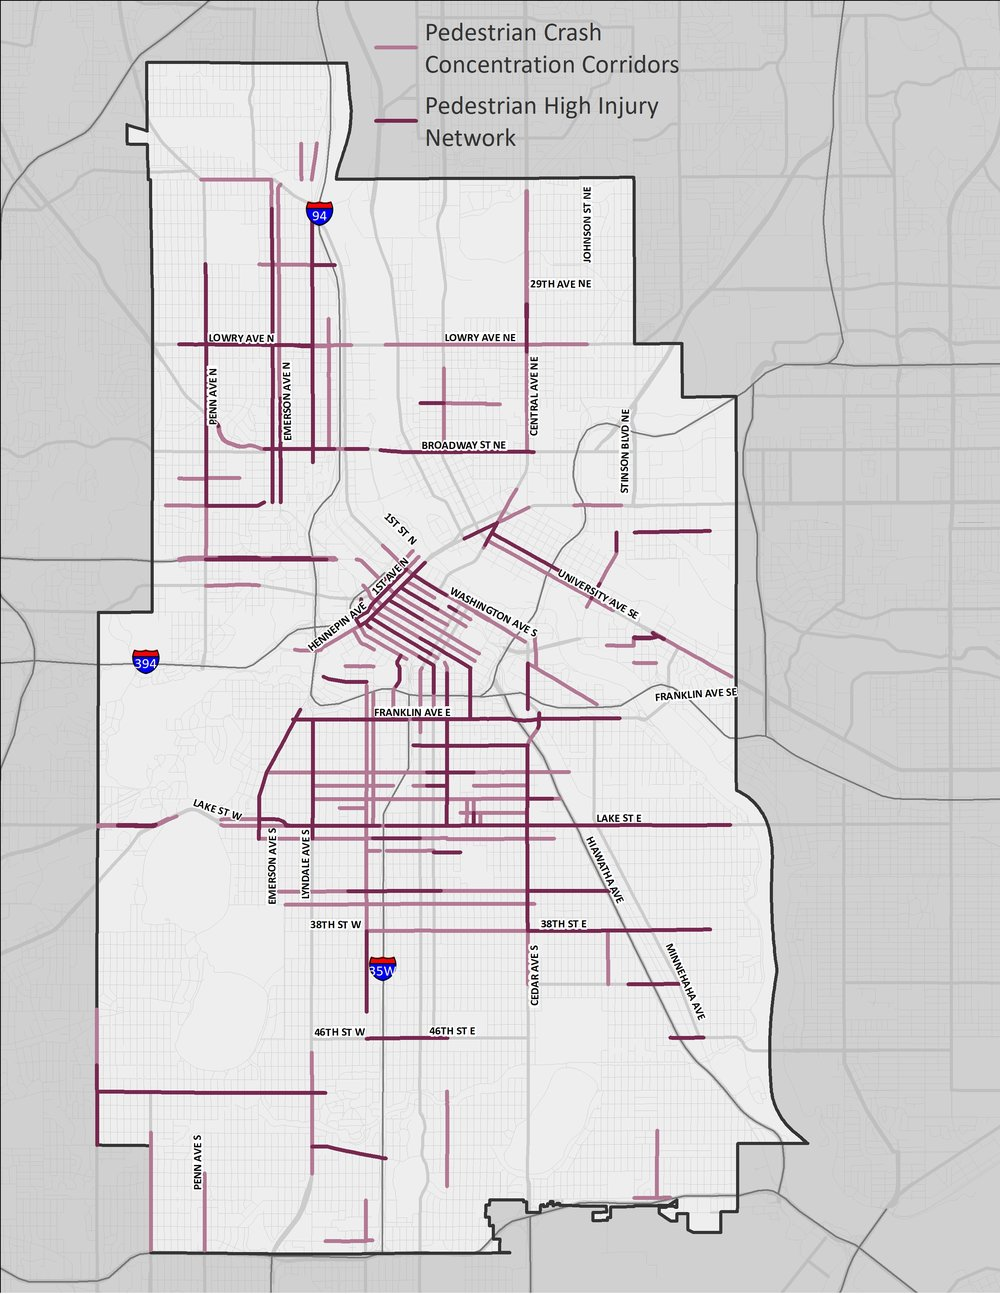 A map of Minneapolis showing the corridors and areas where pedestrian-involved motor vehicle crashes are most prevalent.